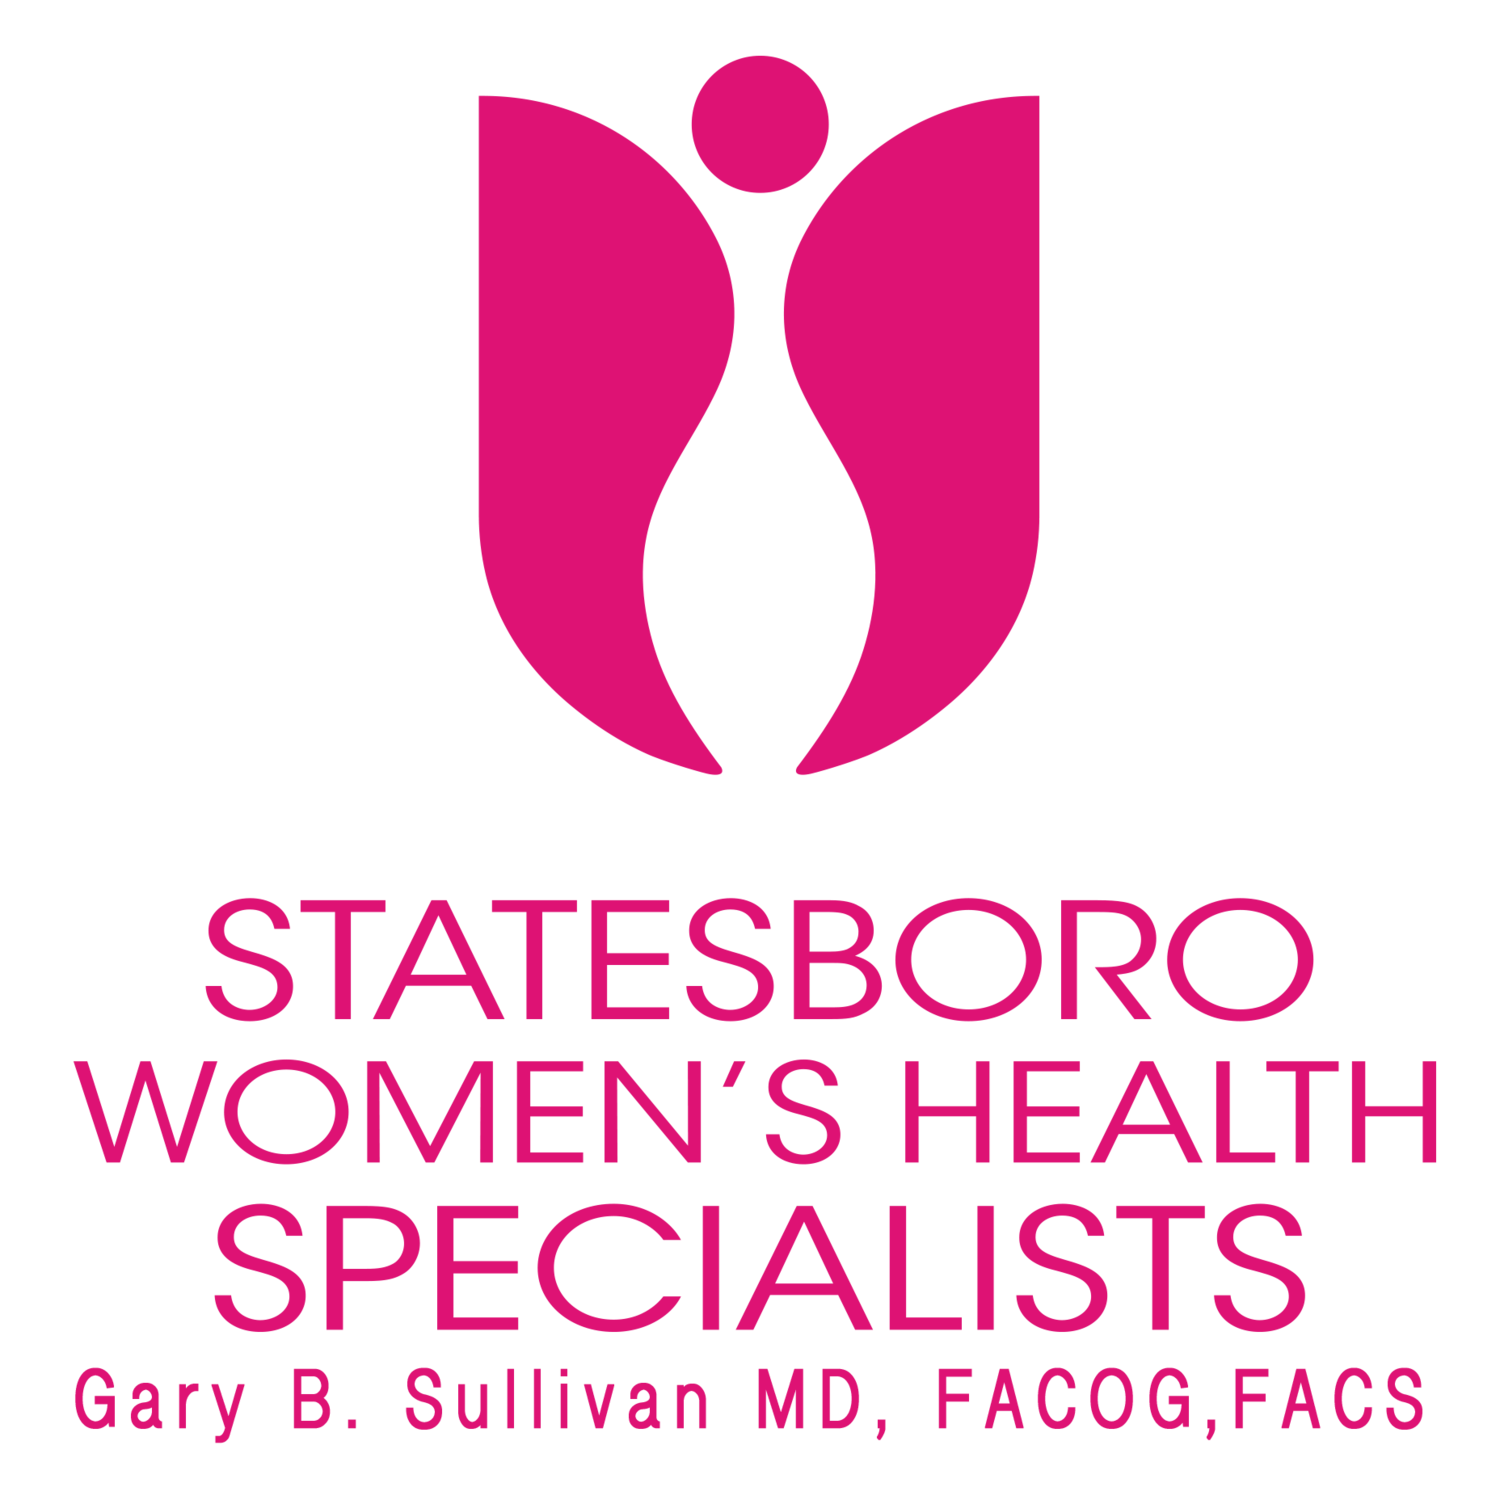 Statesboro Women's Health Specialists